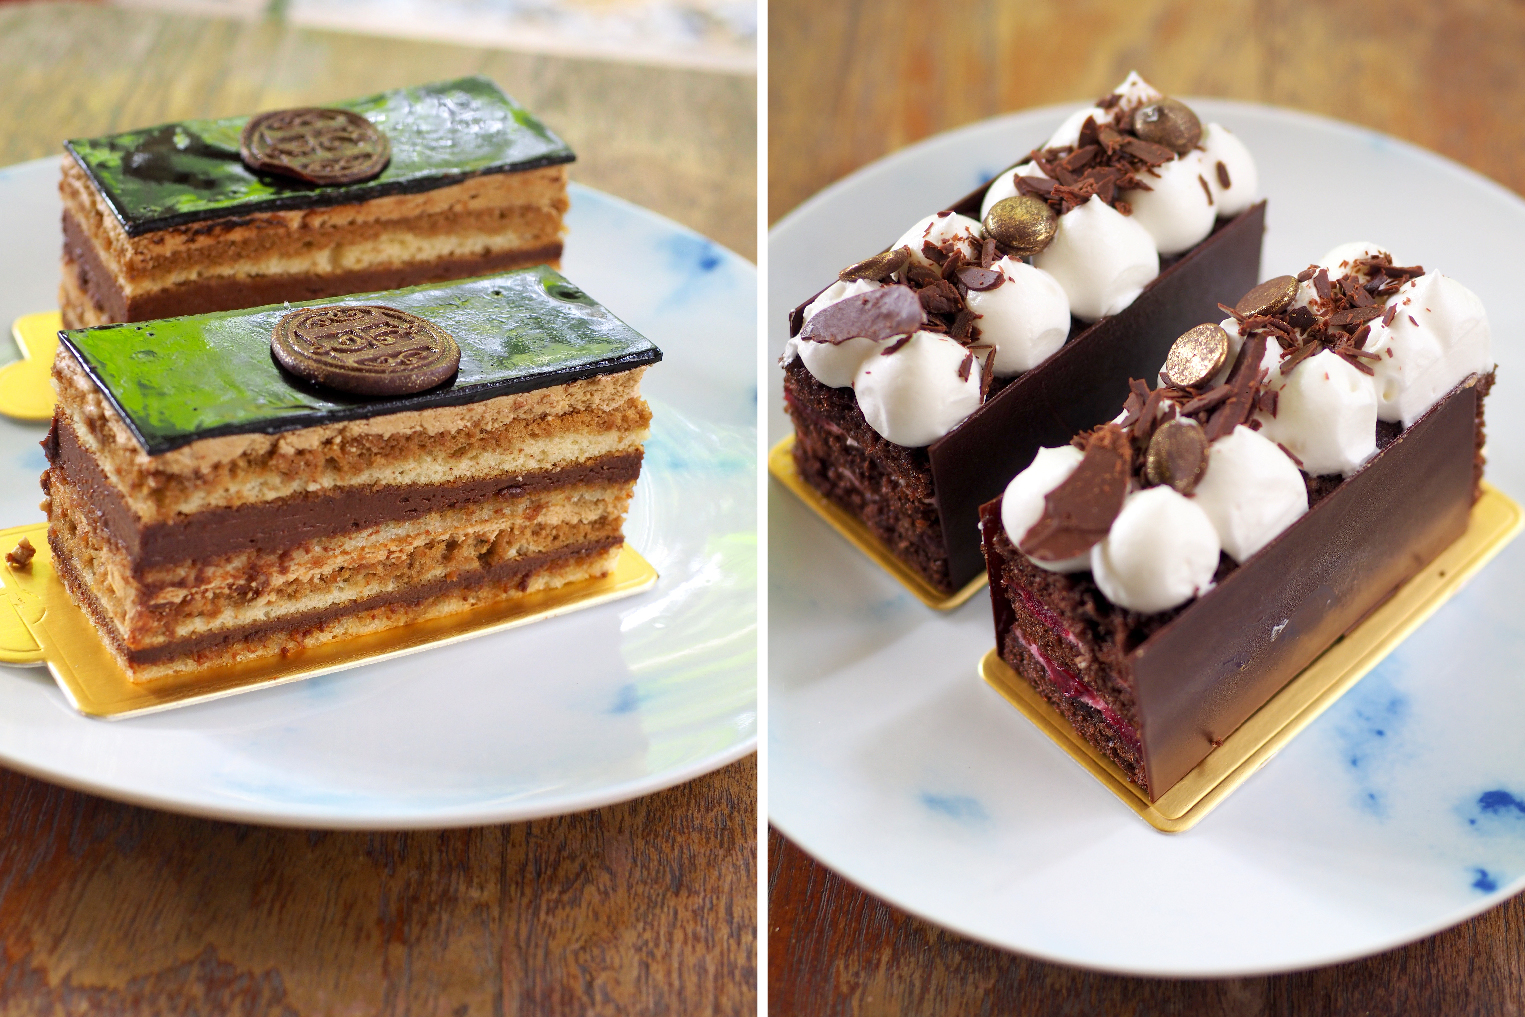 Opera cake comes with multiple layers of chocolate and a nice coffee flavour (left). Black forest cake is picture perfect with its chocolate, cherry and cream layers (right)